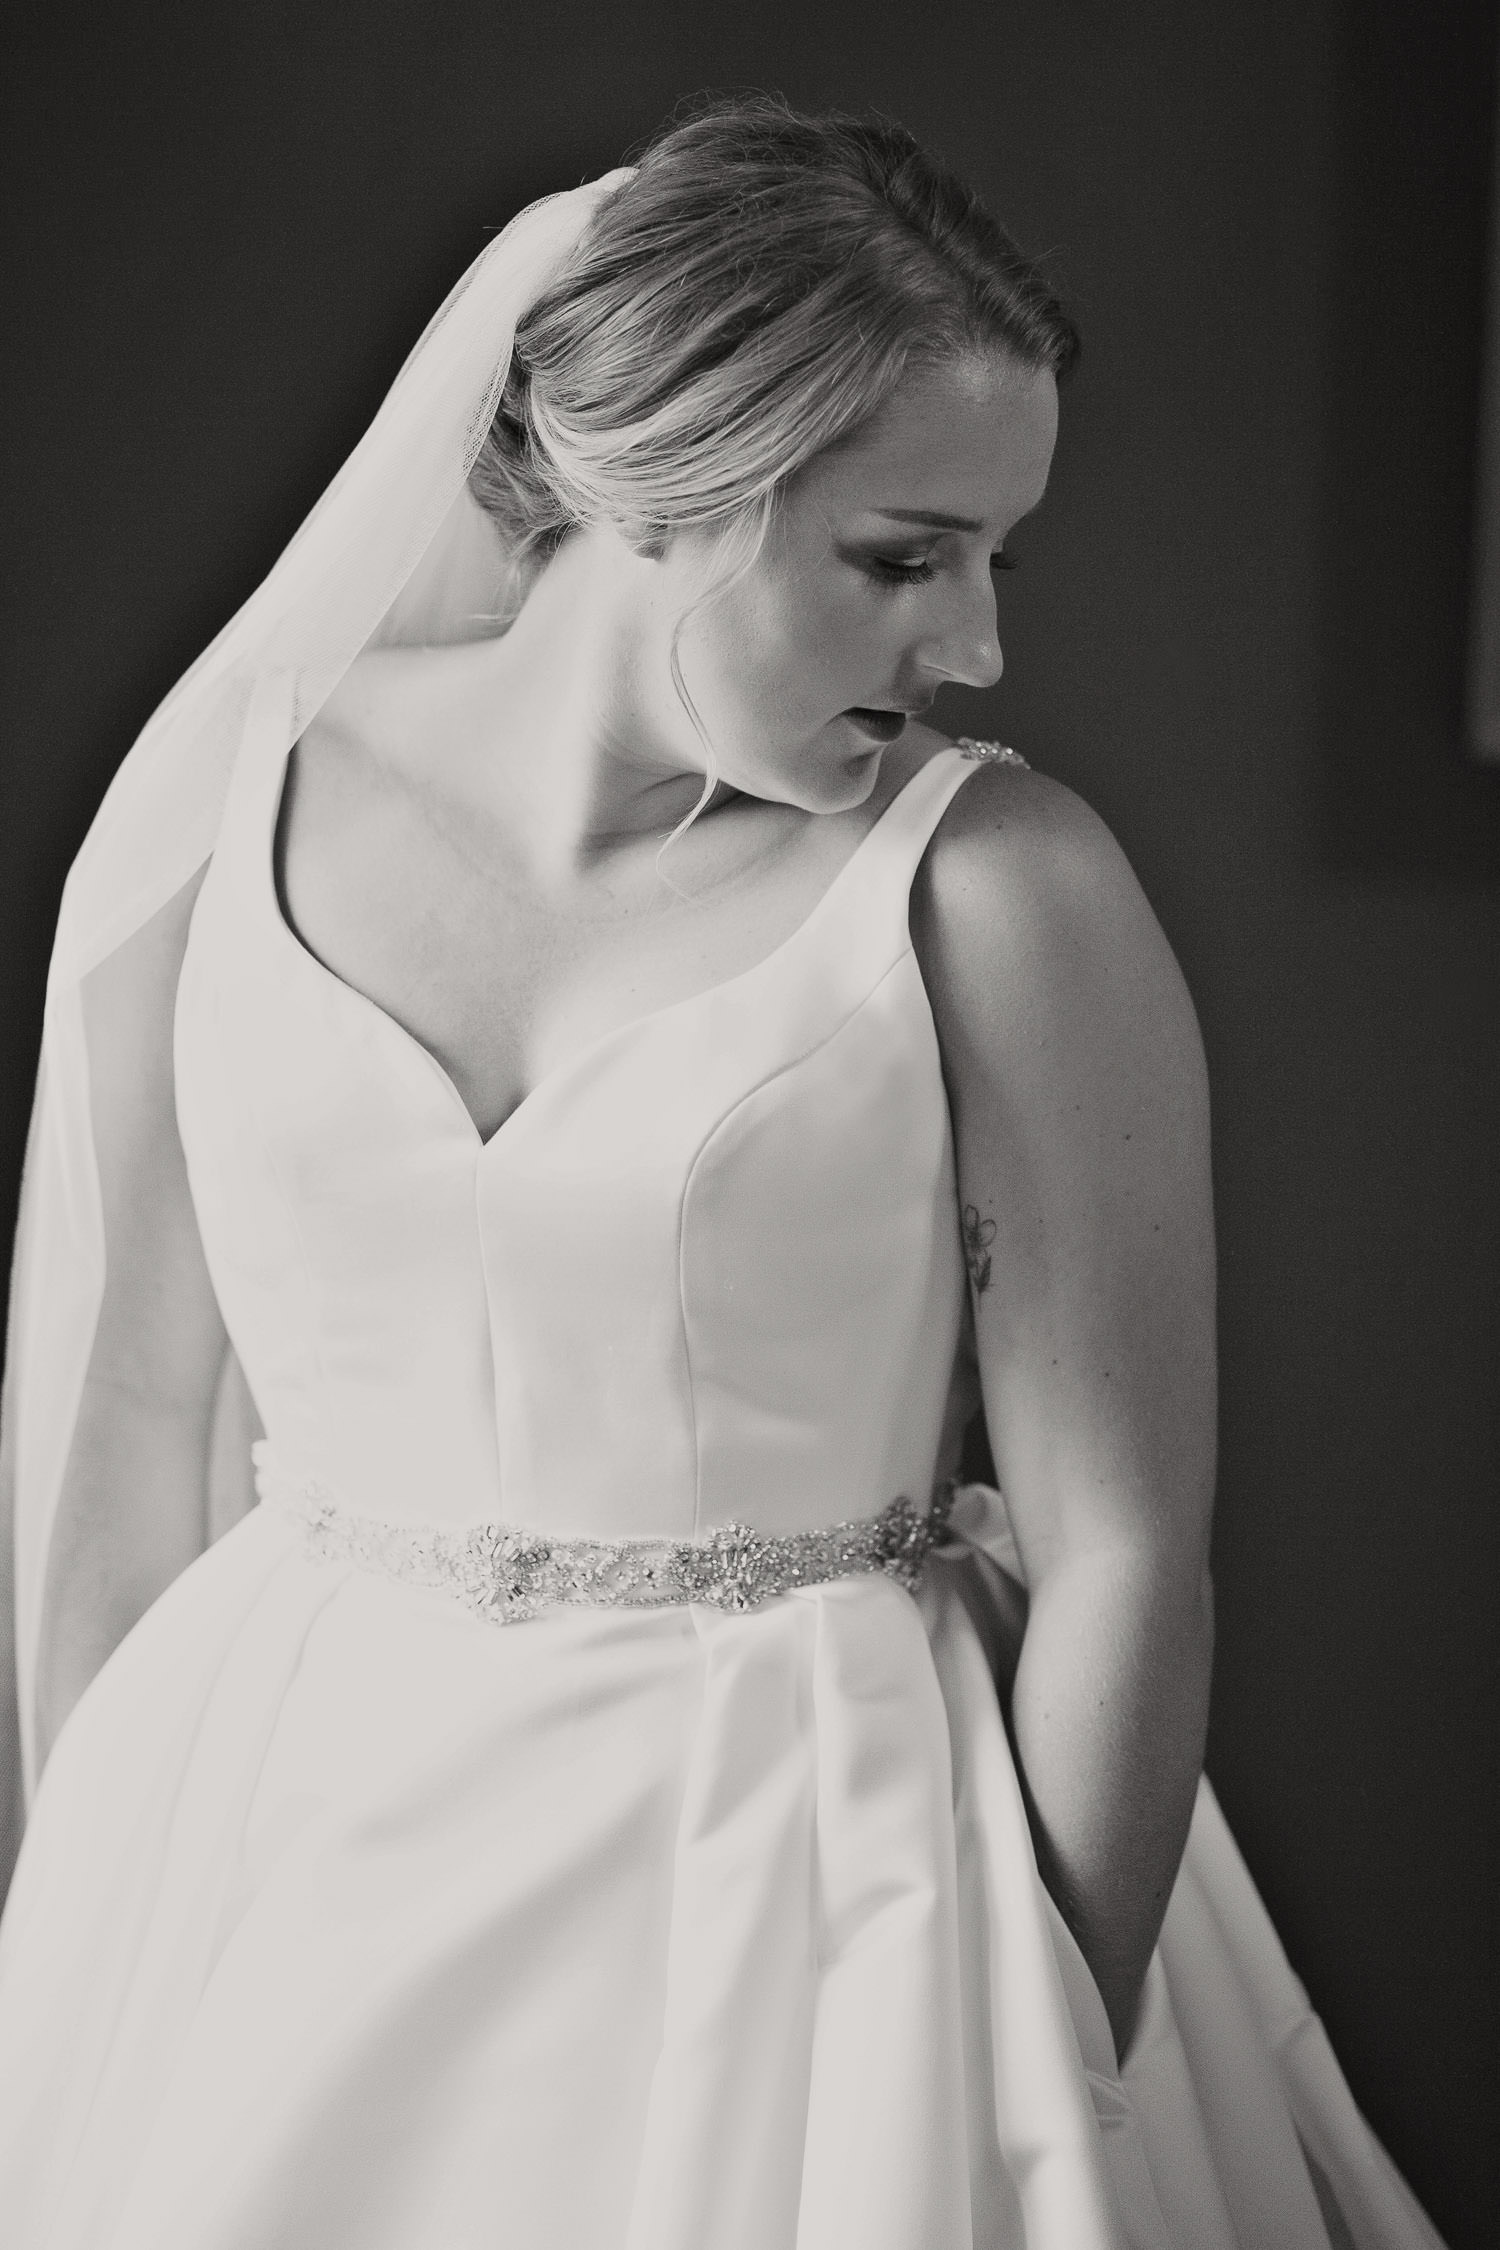 Bridal preparations before a Creekside Villa wedding captured by Tara Whittaker Photography